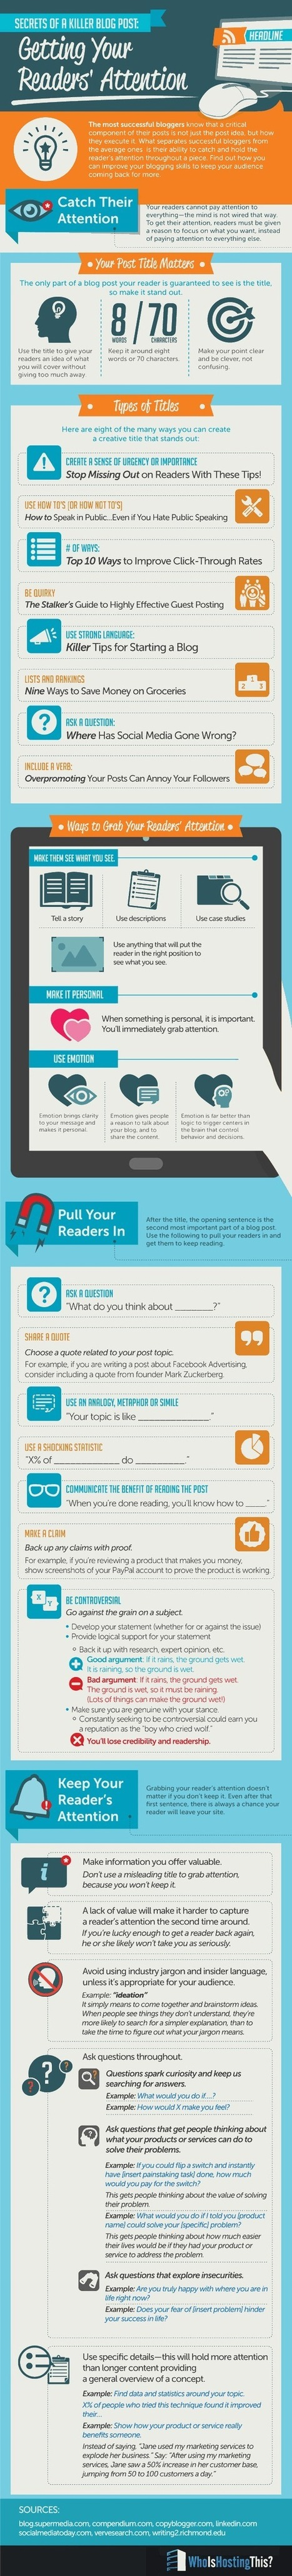 The Secrets to Writing an Attention-Grabbing Blog Post [Infographic] | Quick Social Media | Scoop.it